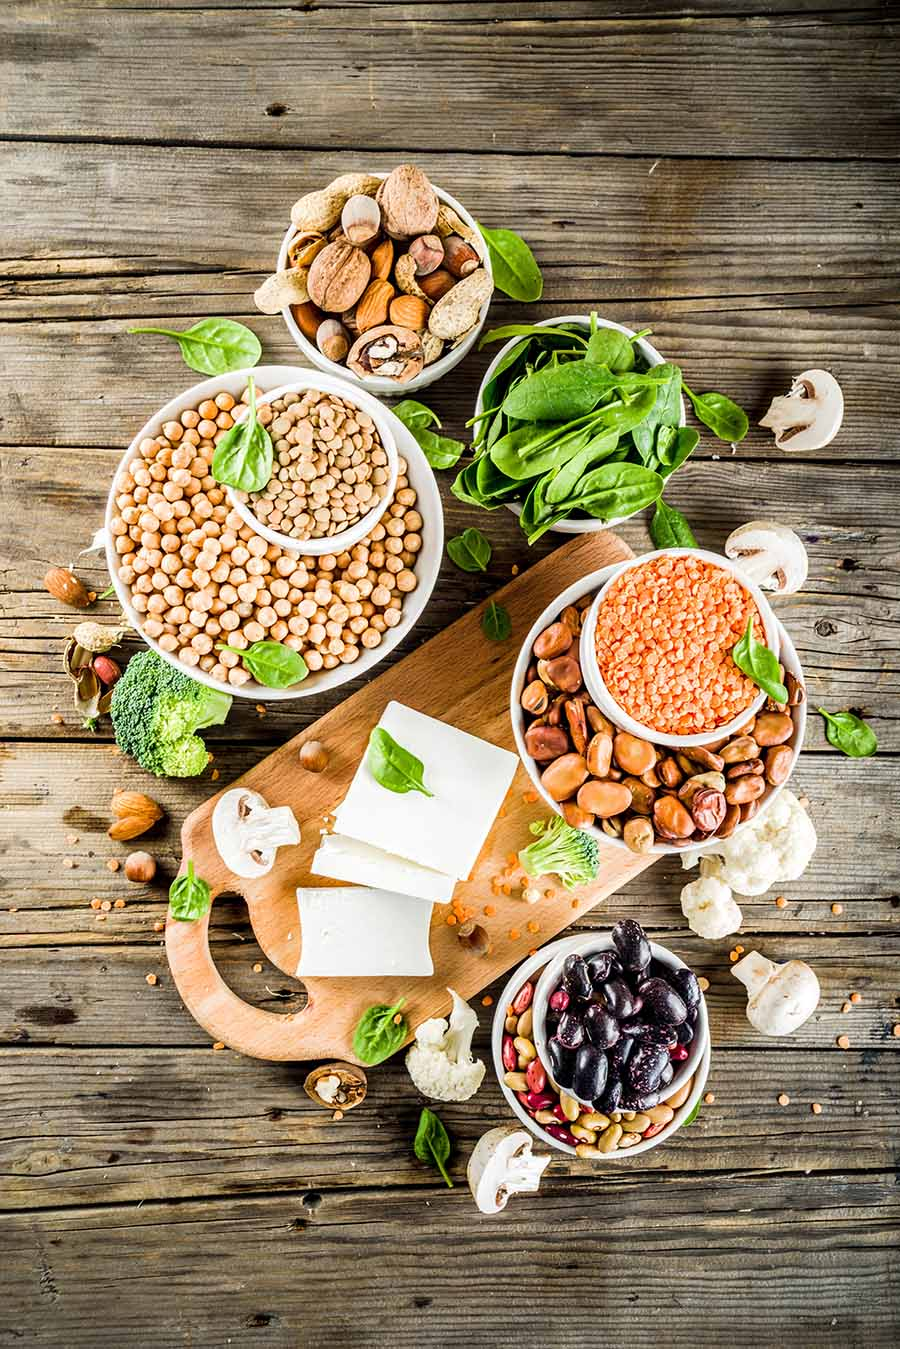 Plant food, vegan protein sources: Tofu, vegan milk, beans, lentils, nuts, spinach and seeds.